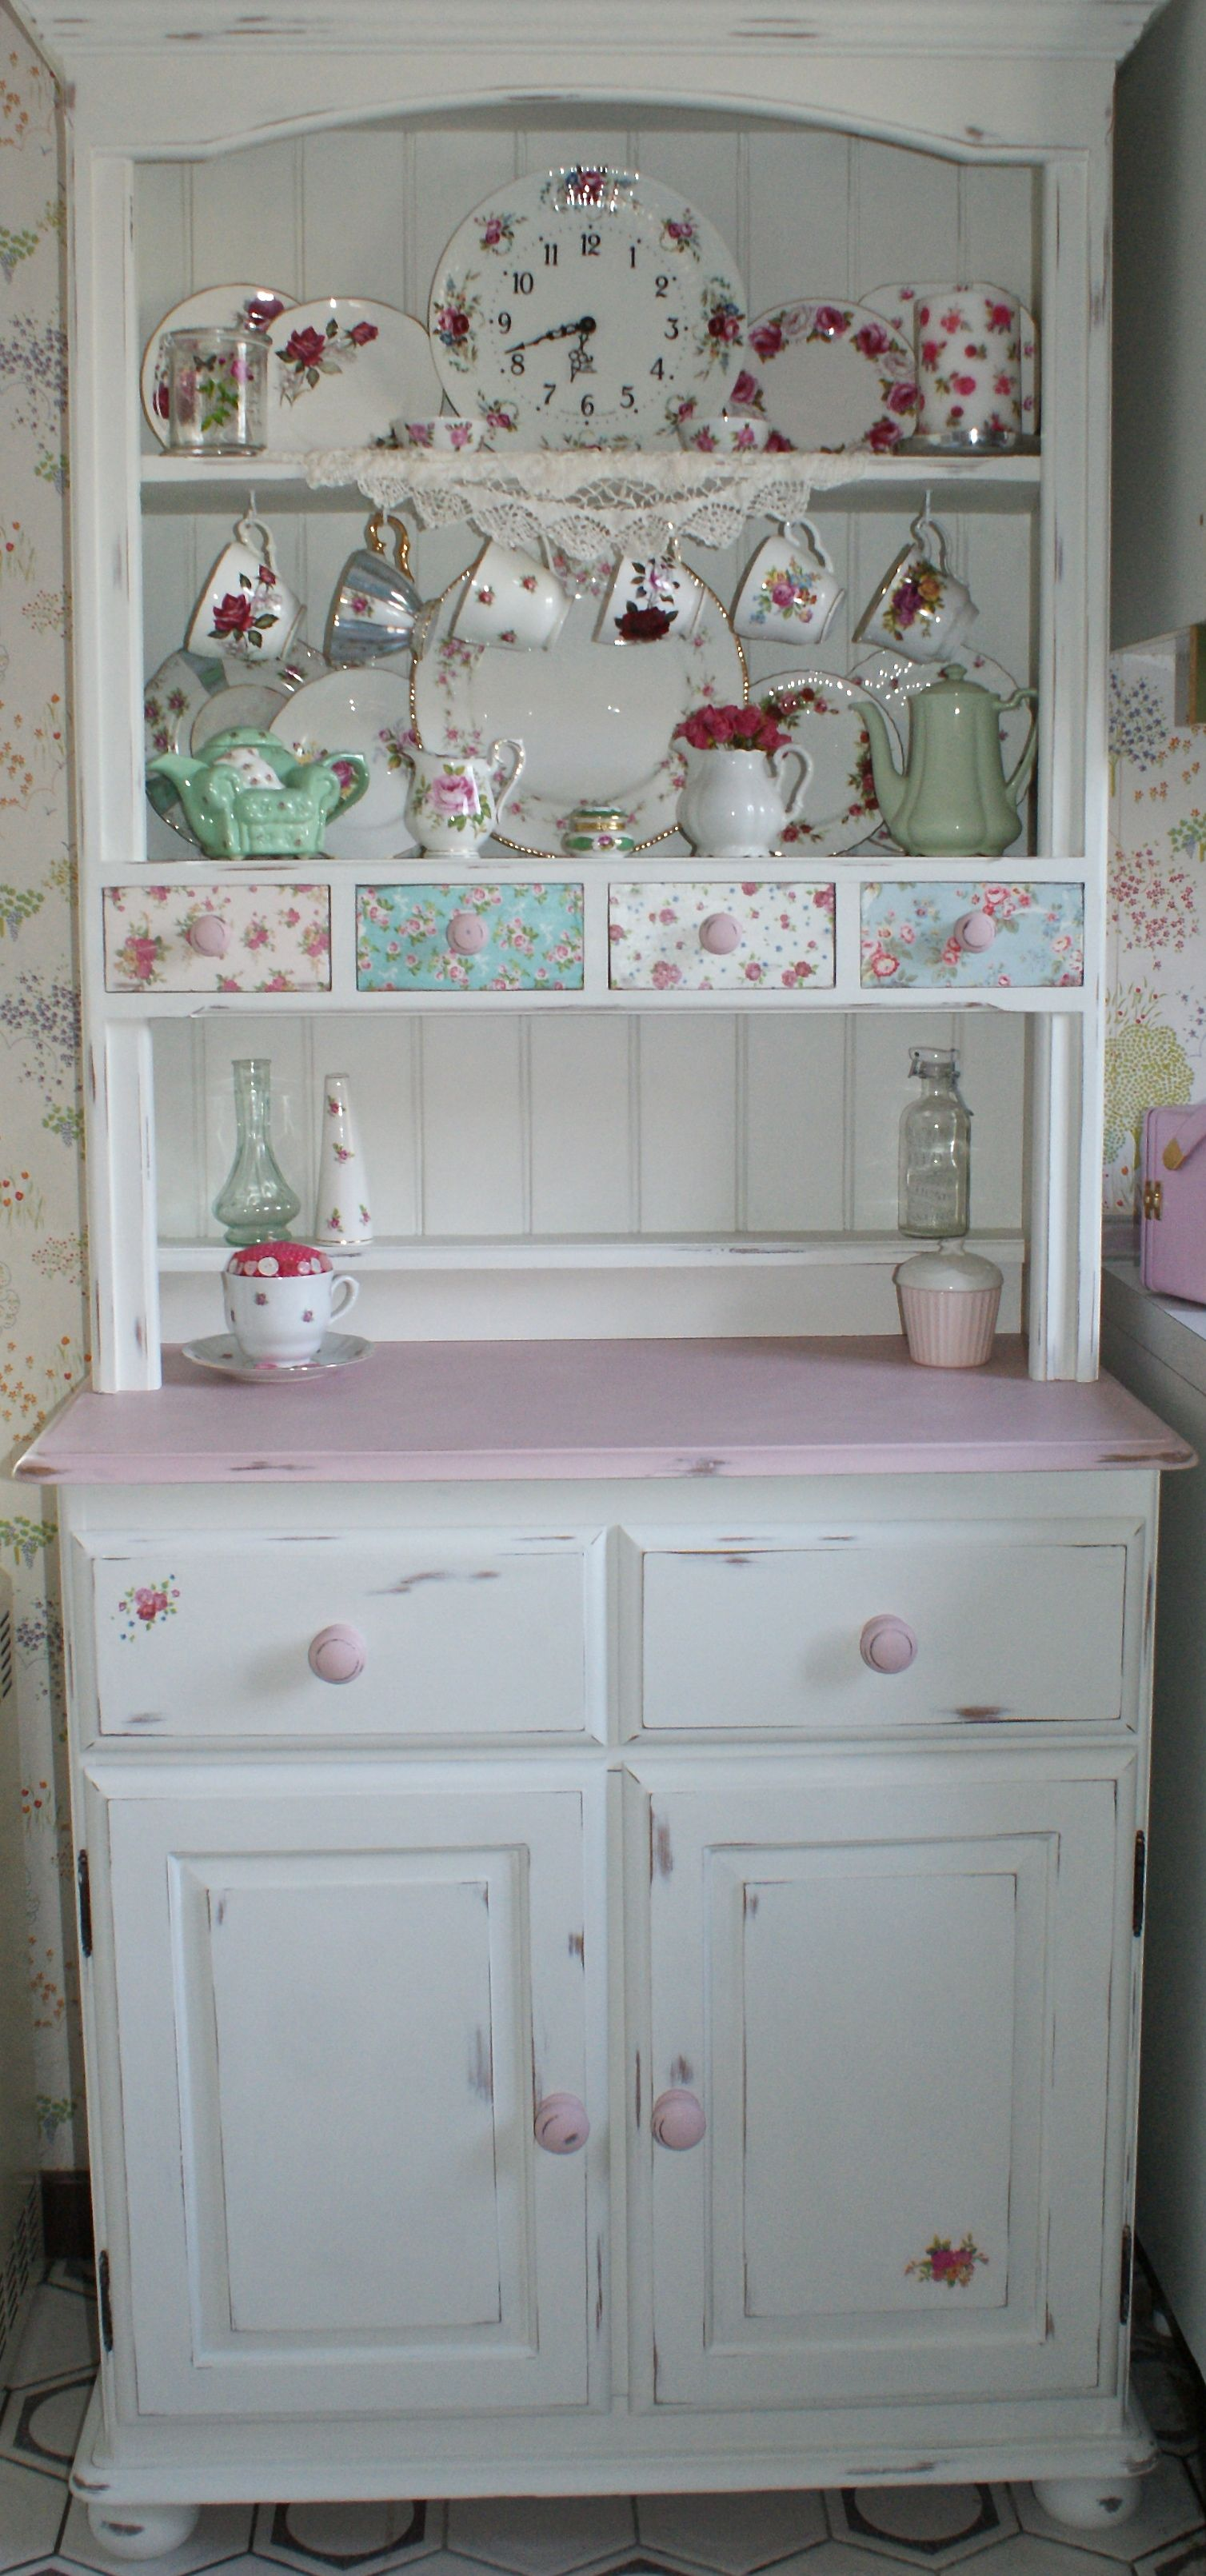 Shabby Chic Kitchen Dresser Painted In Annie Sloan Old White And Antoinette With Decoupage Shabby Chic Dresser Shabby Chic Kitchen Dresser Shabby Chic Kitchen